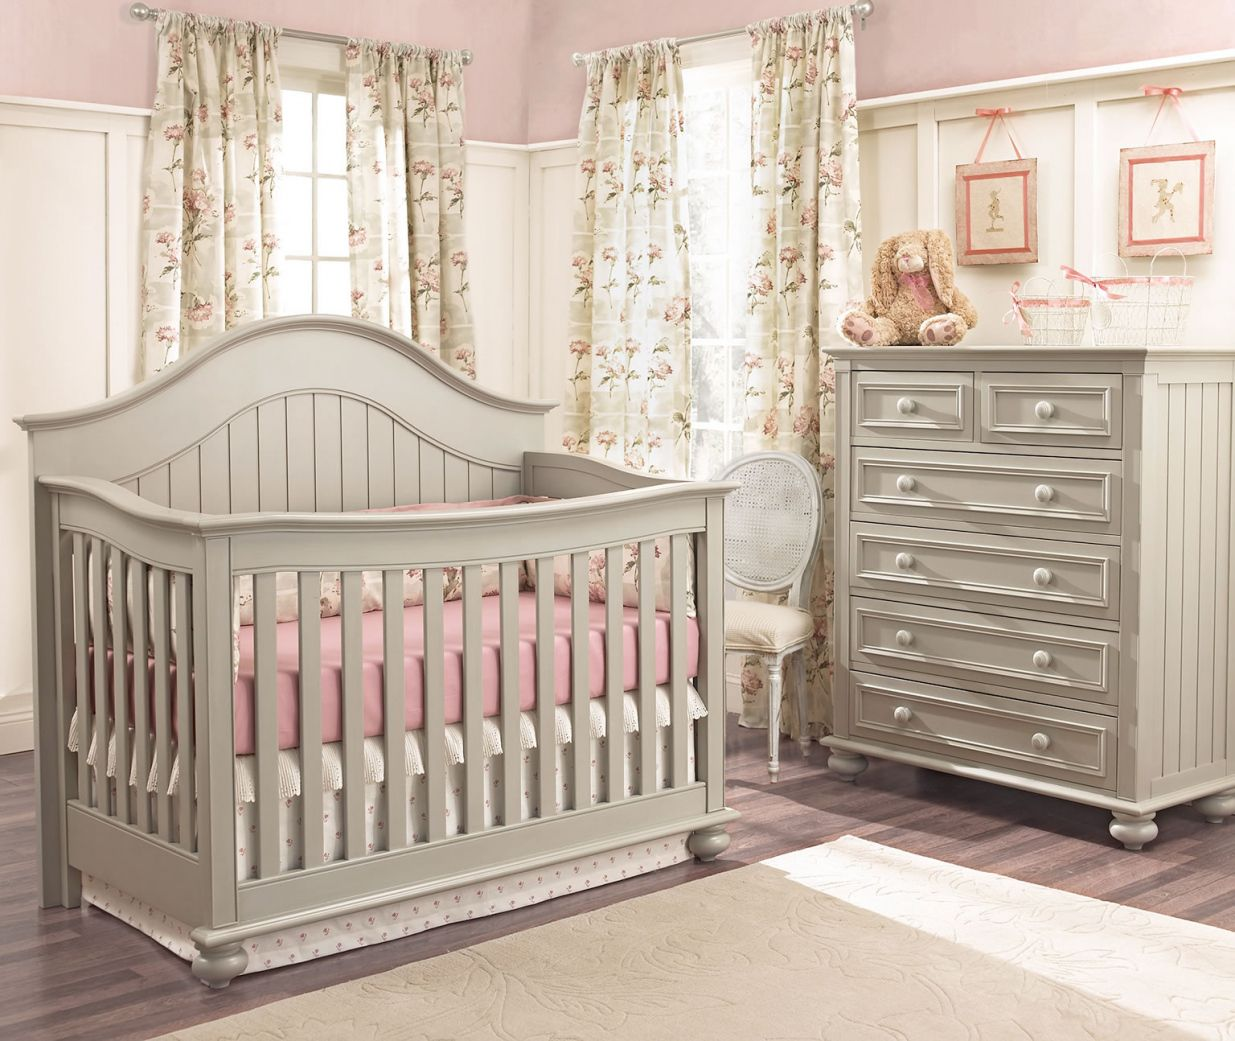 Baby Furniture S Nj Best Interior Wall Paint Check More At Http